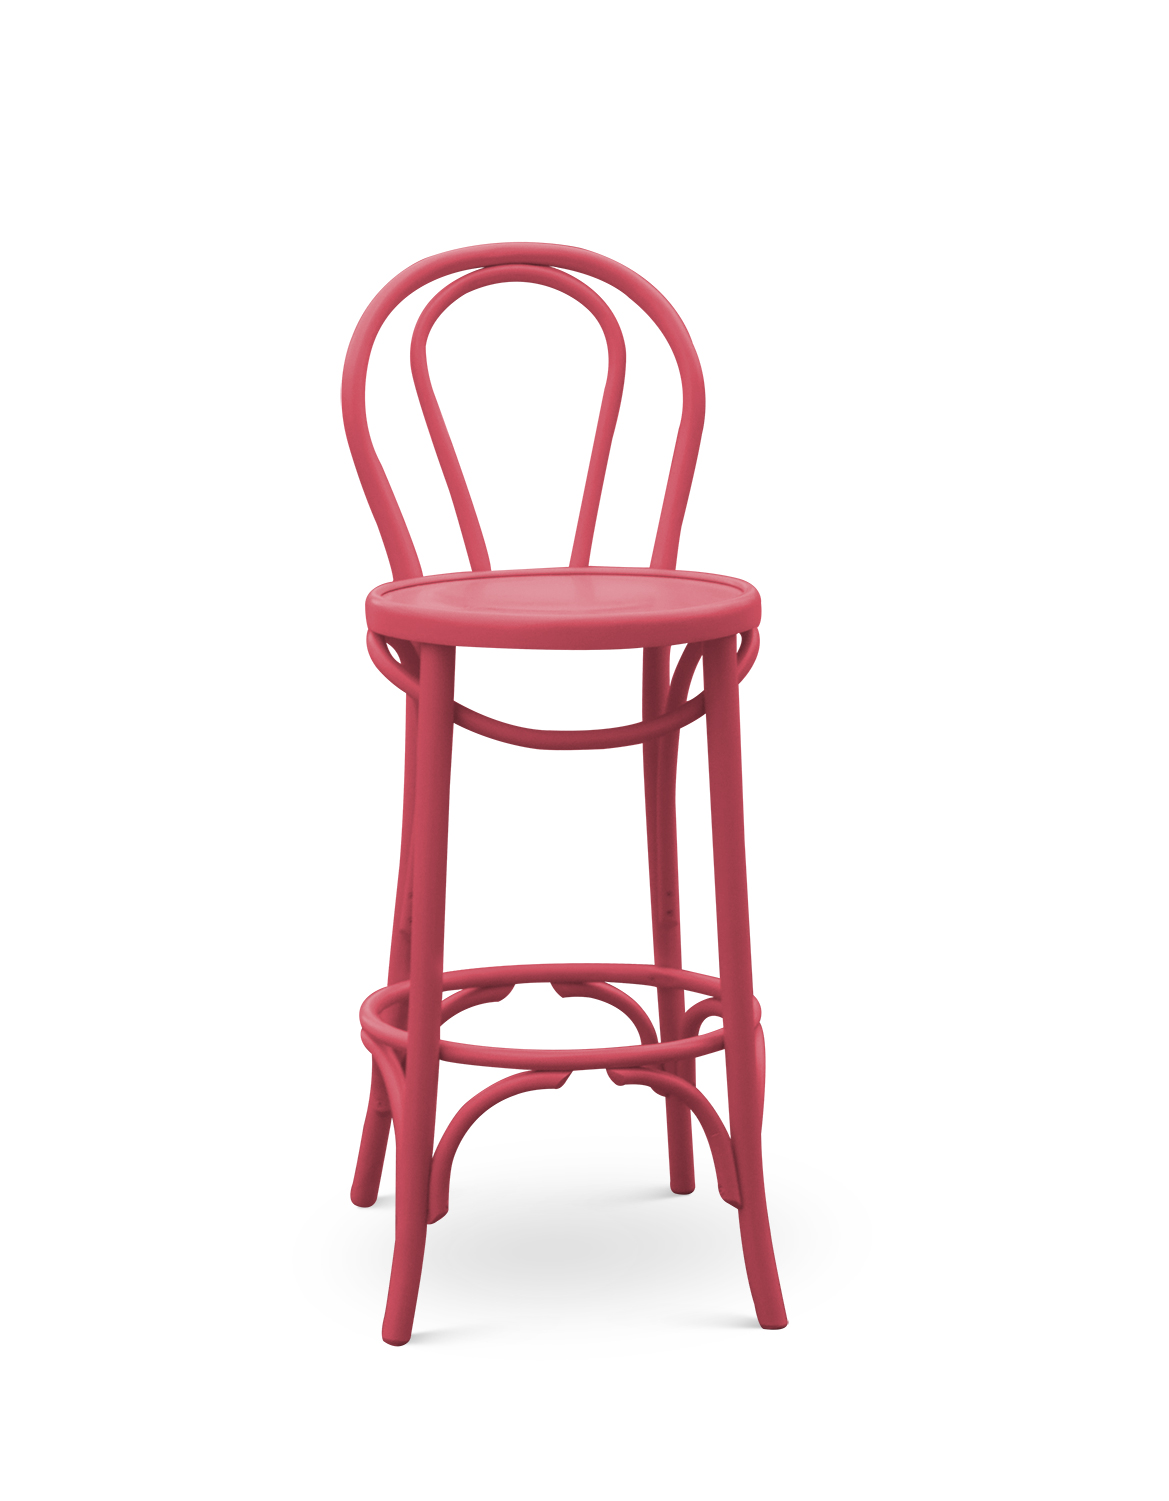 Colored 6016 chair